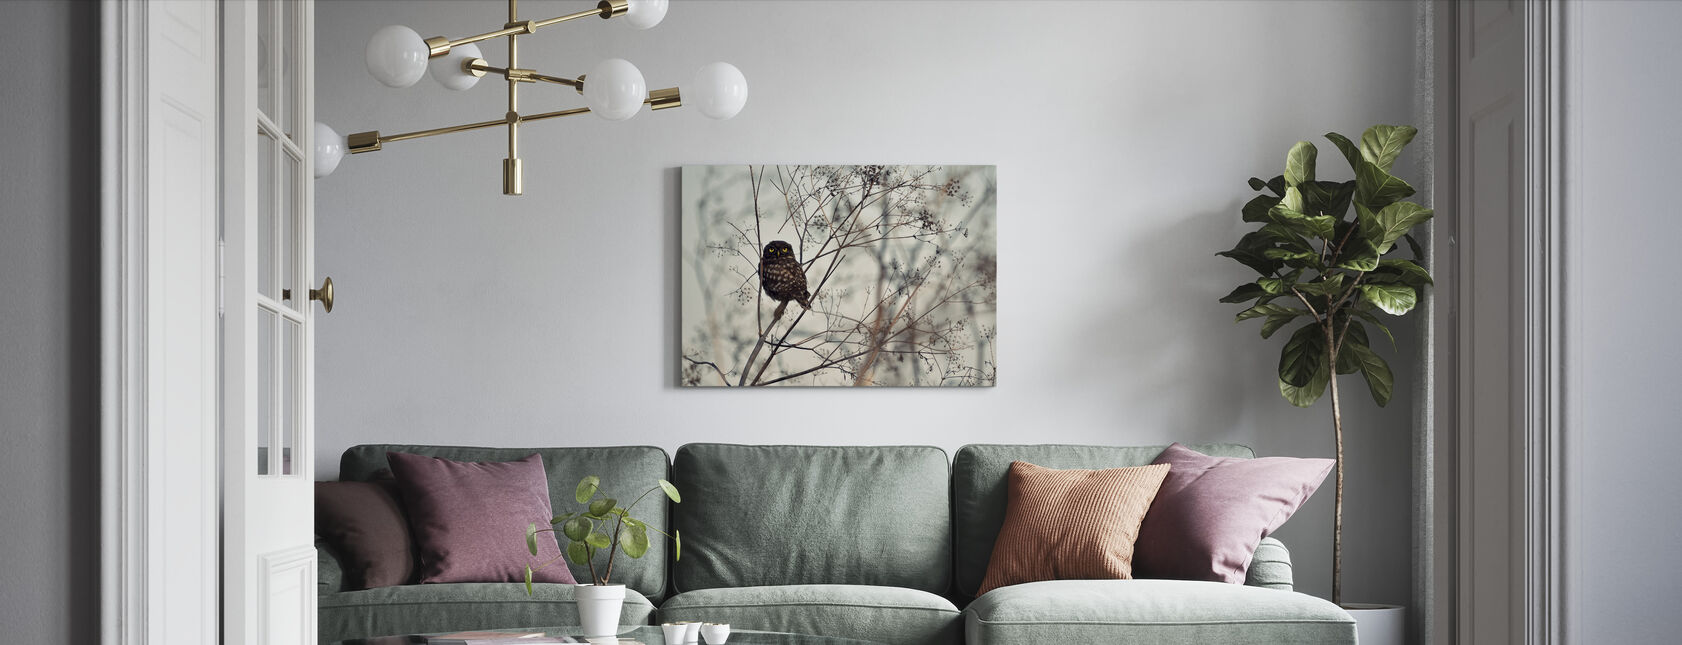 Look at Me - Canvas print - Living Room